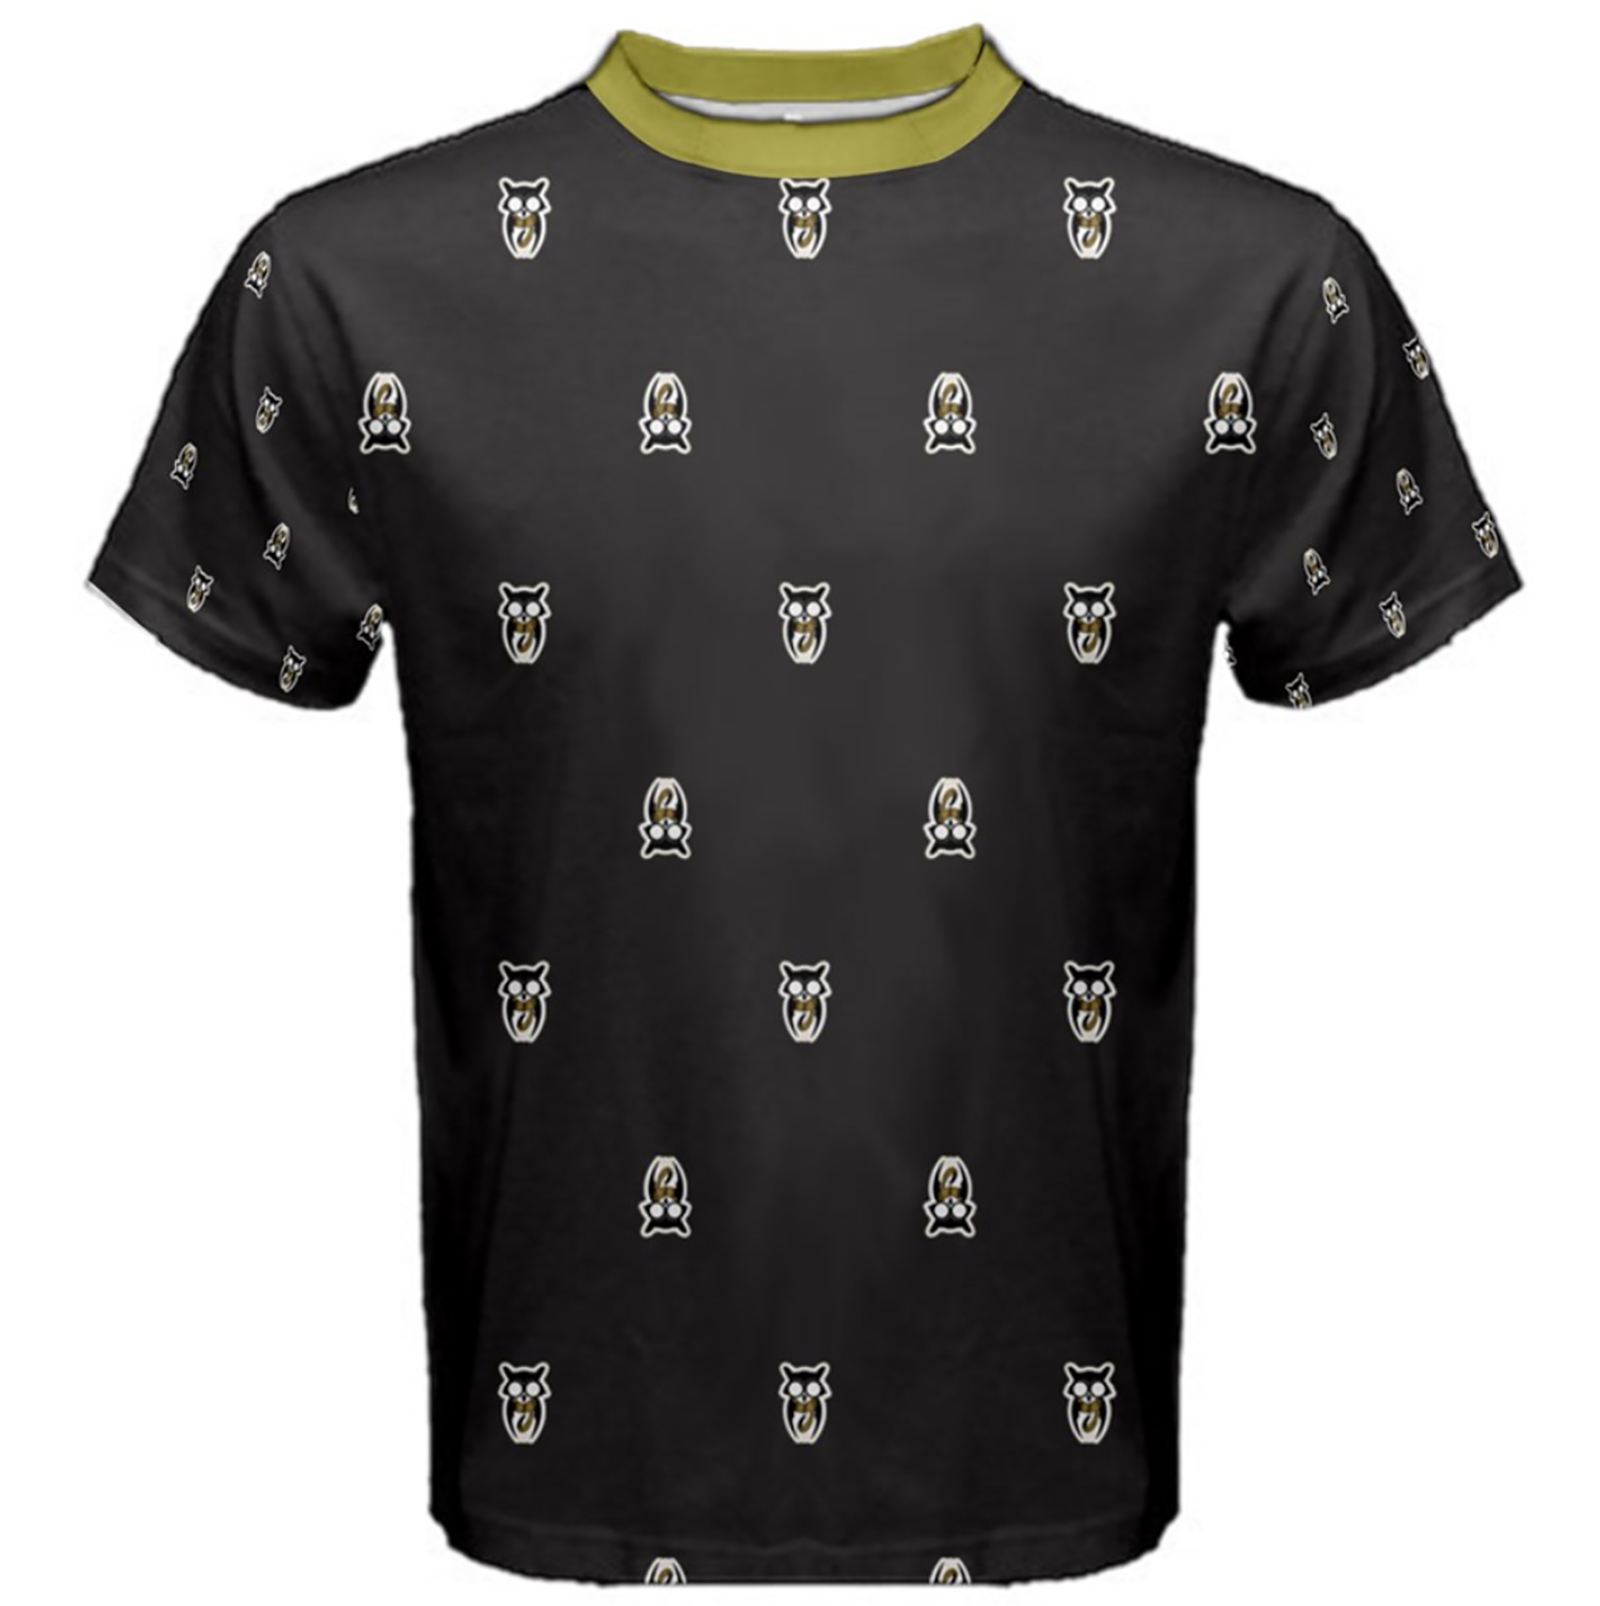 Owl Patterned (Unisex) Cotton Tee - Inspired by Hufflepuff House